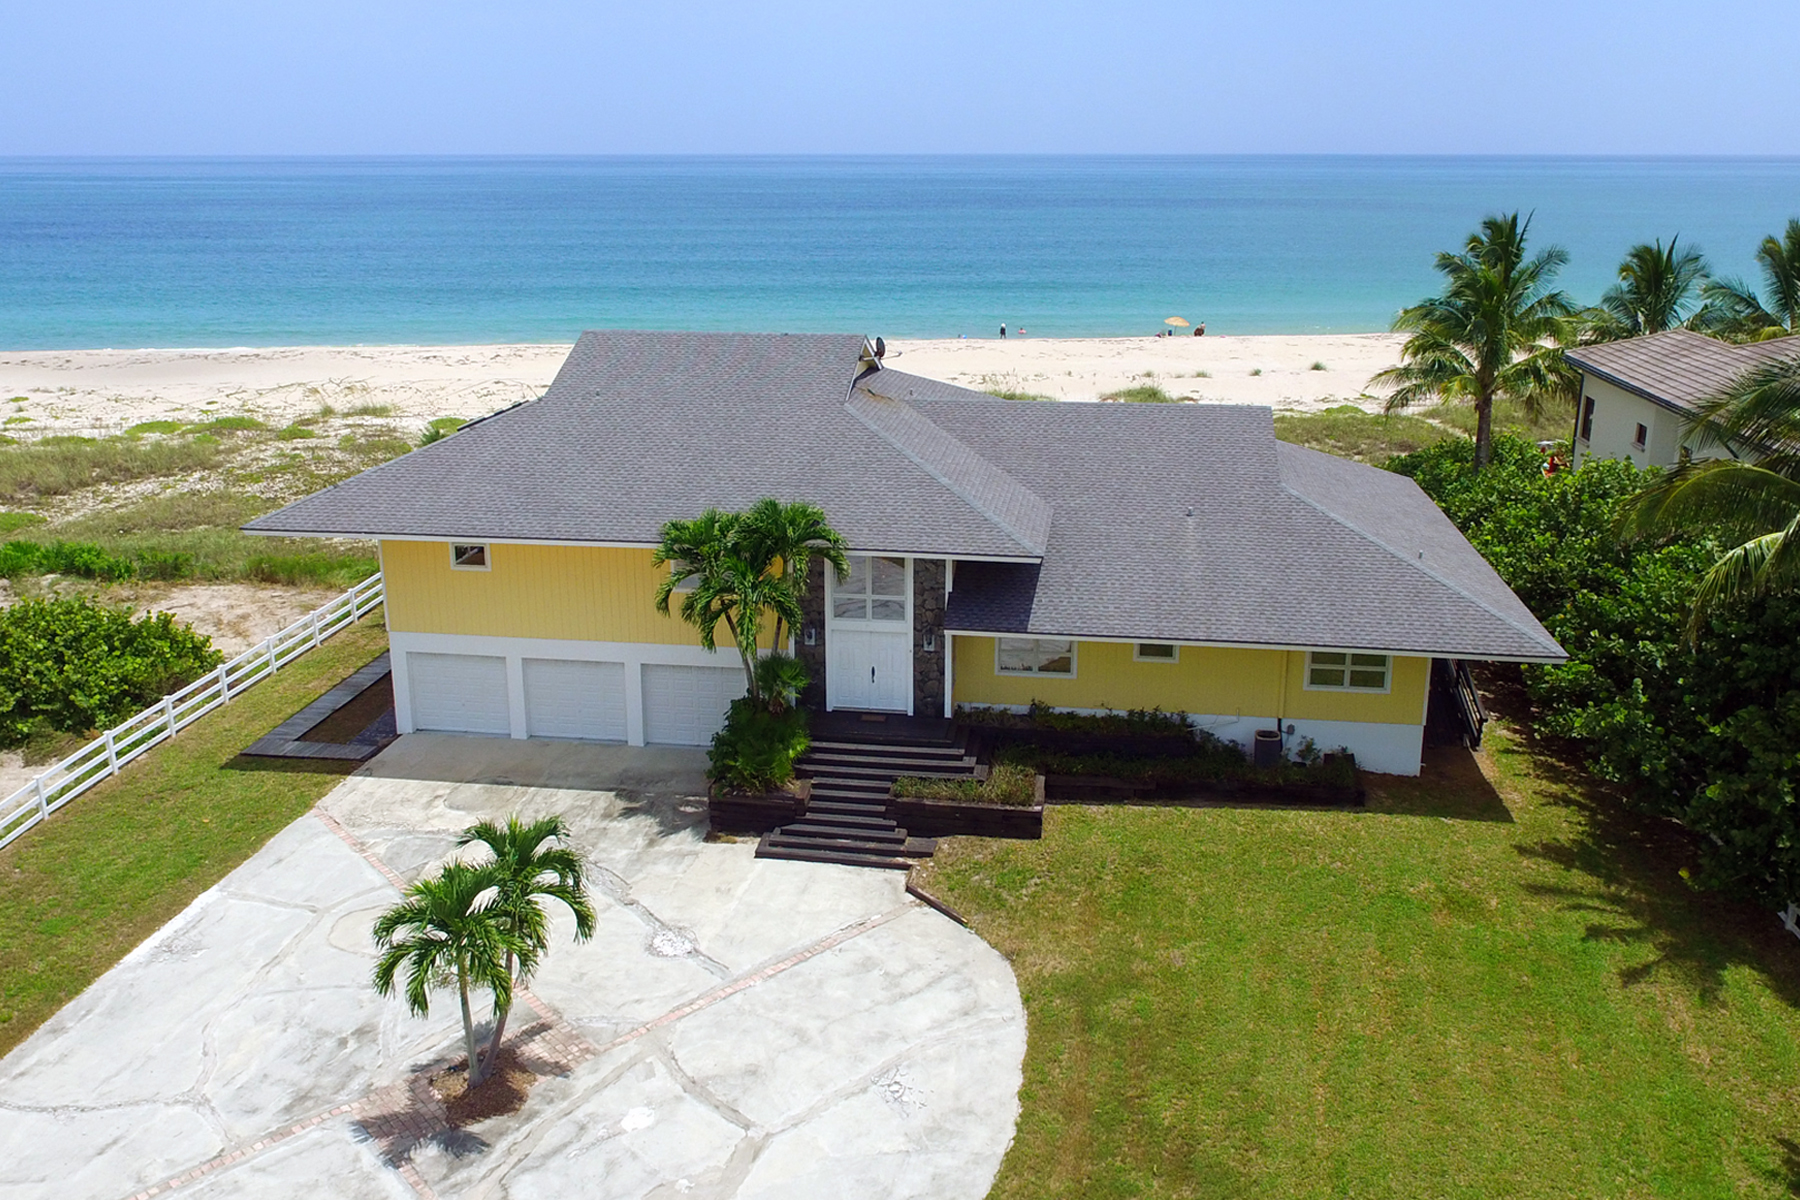 Single Family Home for Sale at Sunswept Beach Estate 6740 N A1A Fort Pierce, Florida 34949 United States